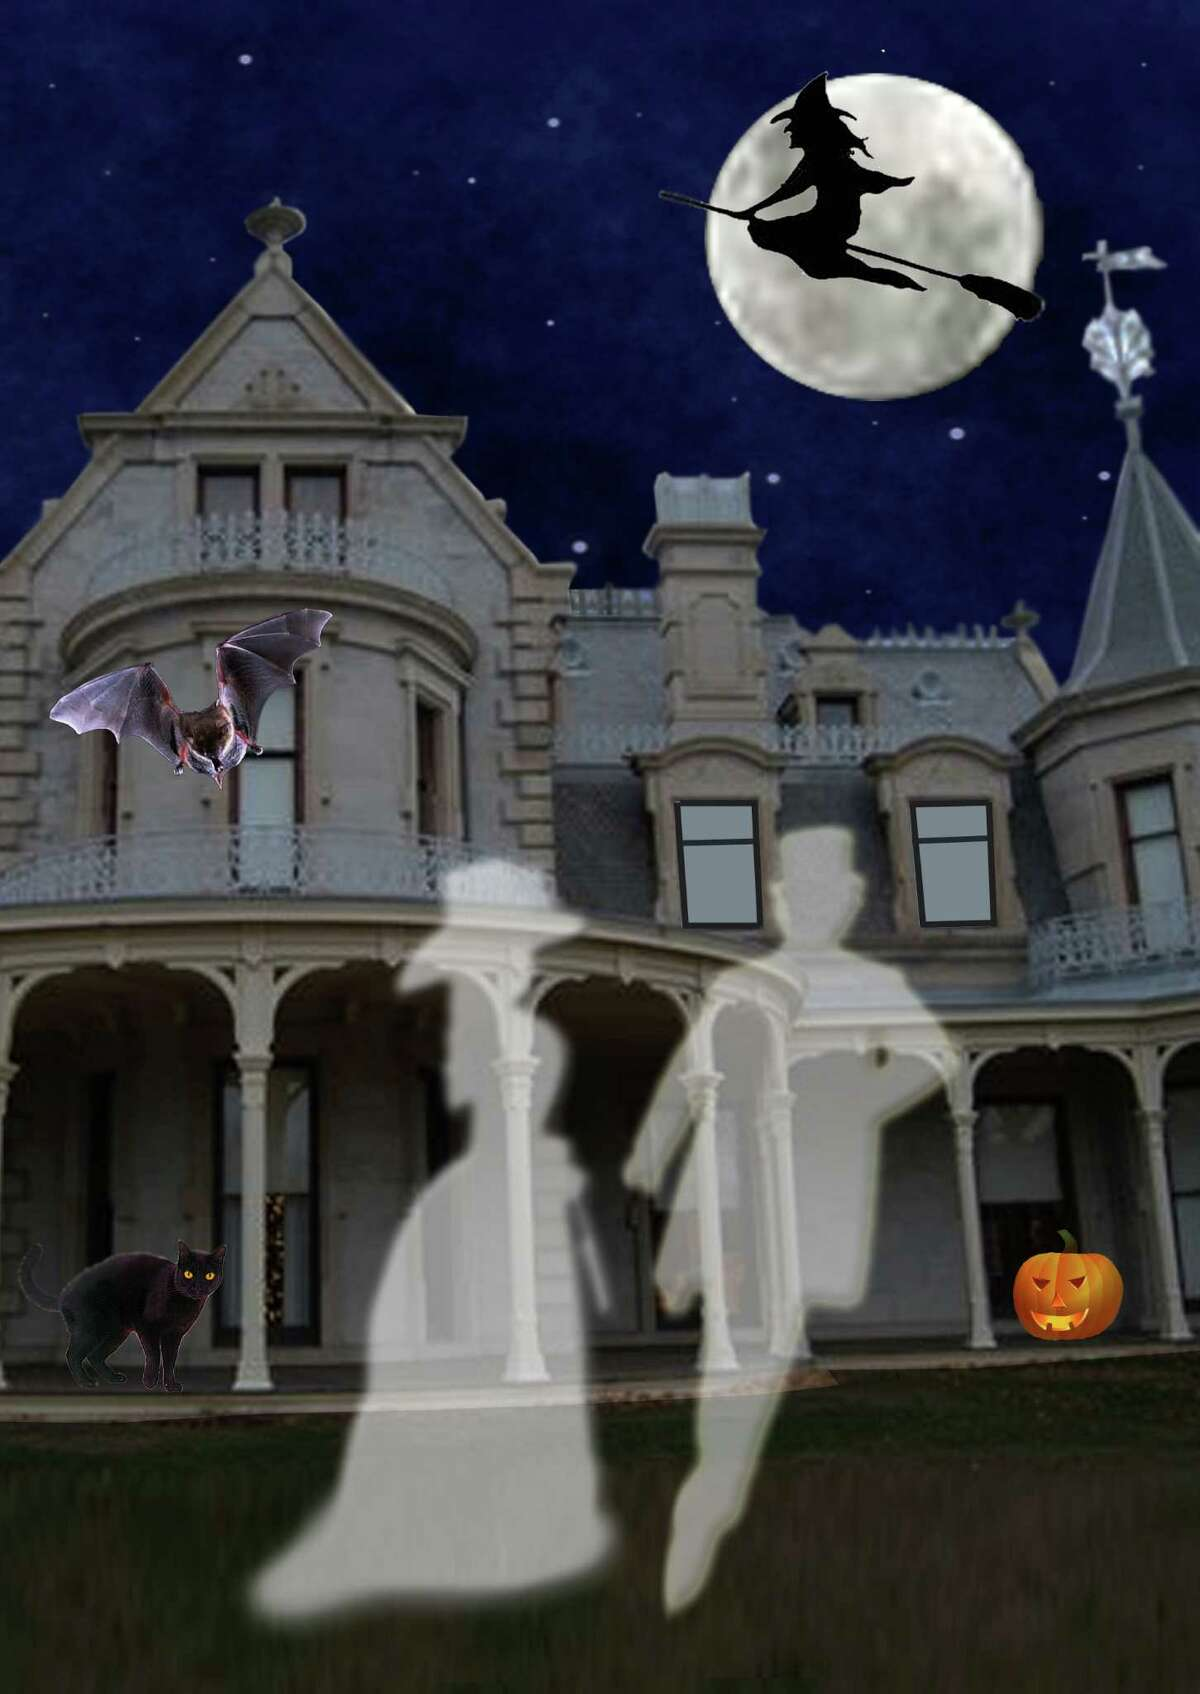 The Lockwood-Mathews Mansion Museum is the spooky site for three Halloween events: Ghostly Sightings Tours, Haunted Basement Tours and an Oct. 26 Victorian Villains Halloween Costume Party. All events are appropriate for adults.